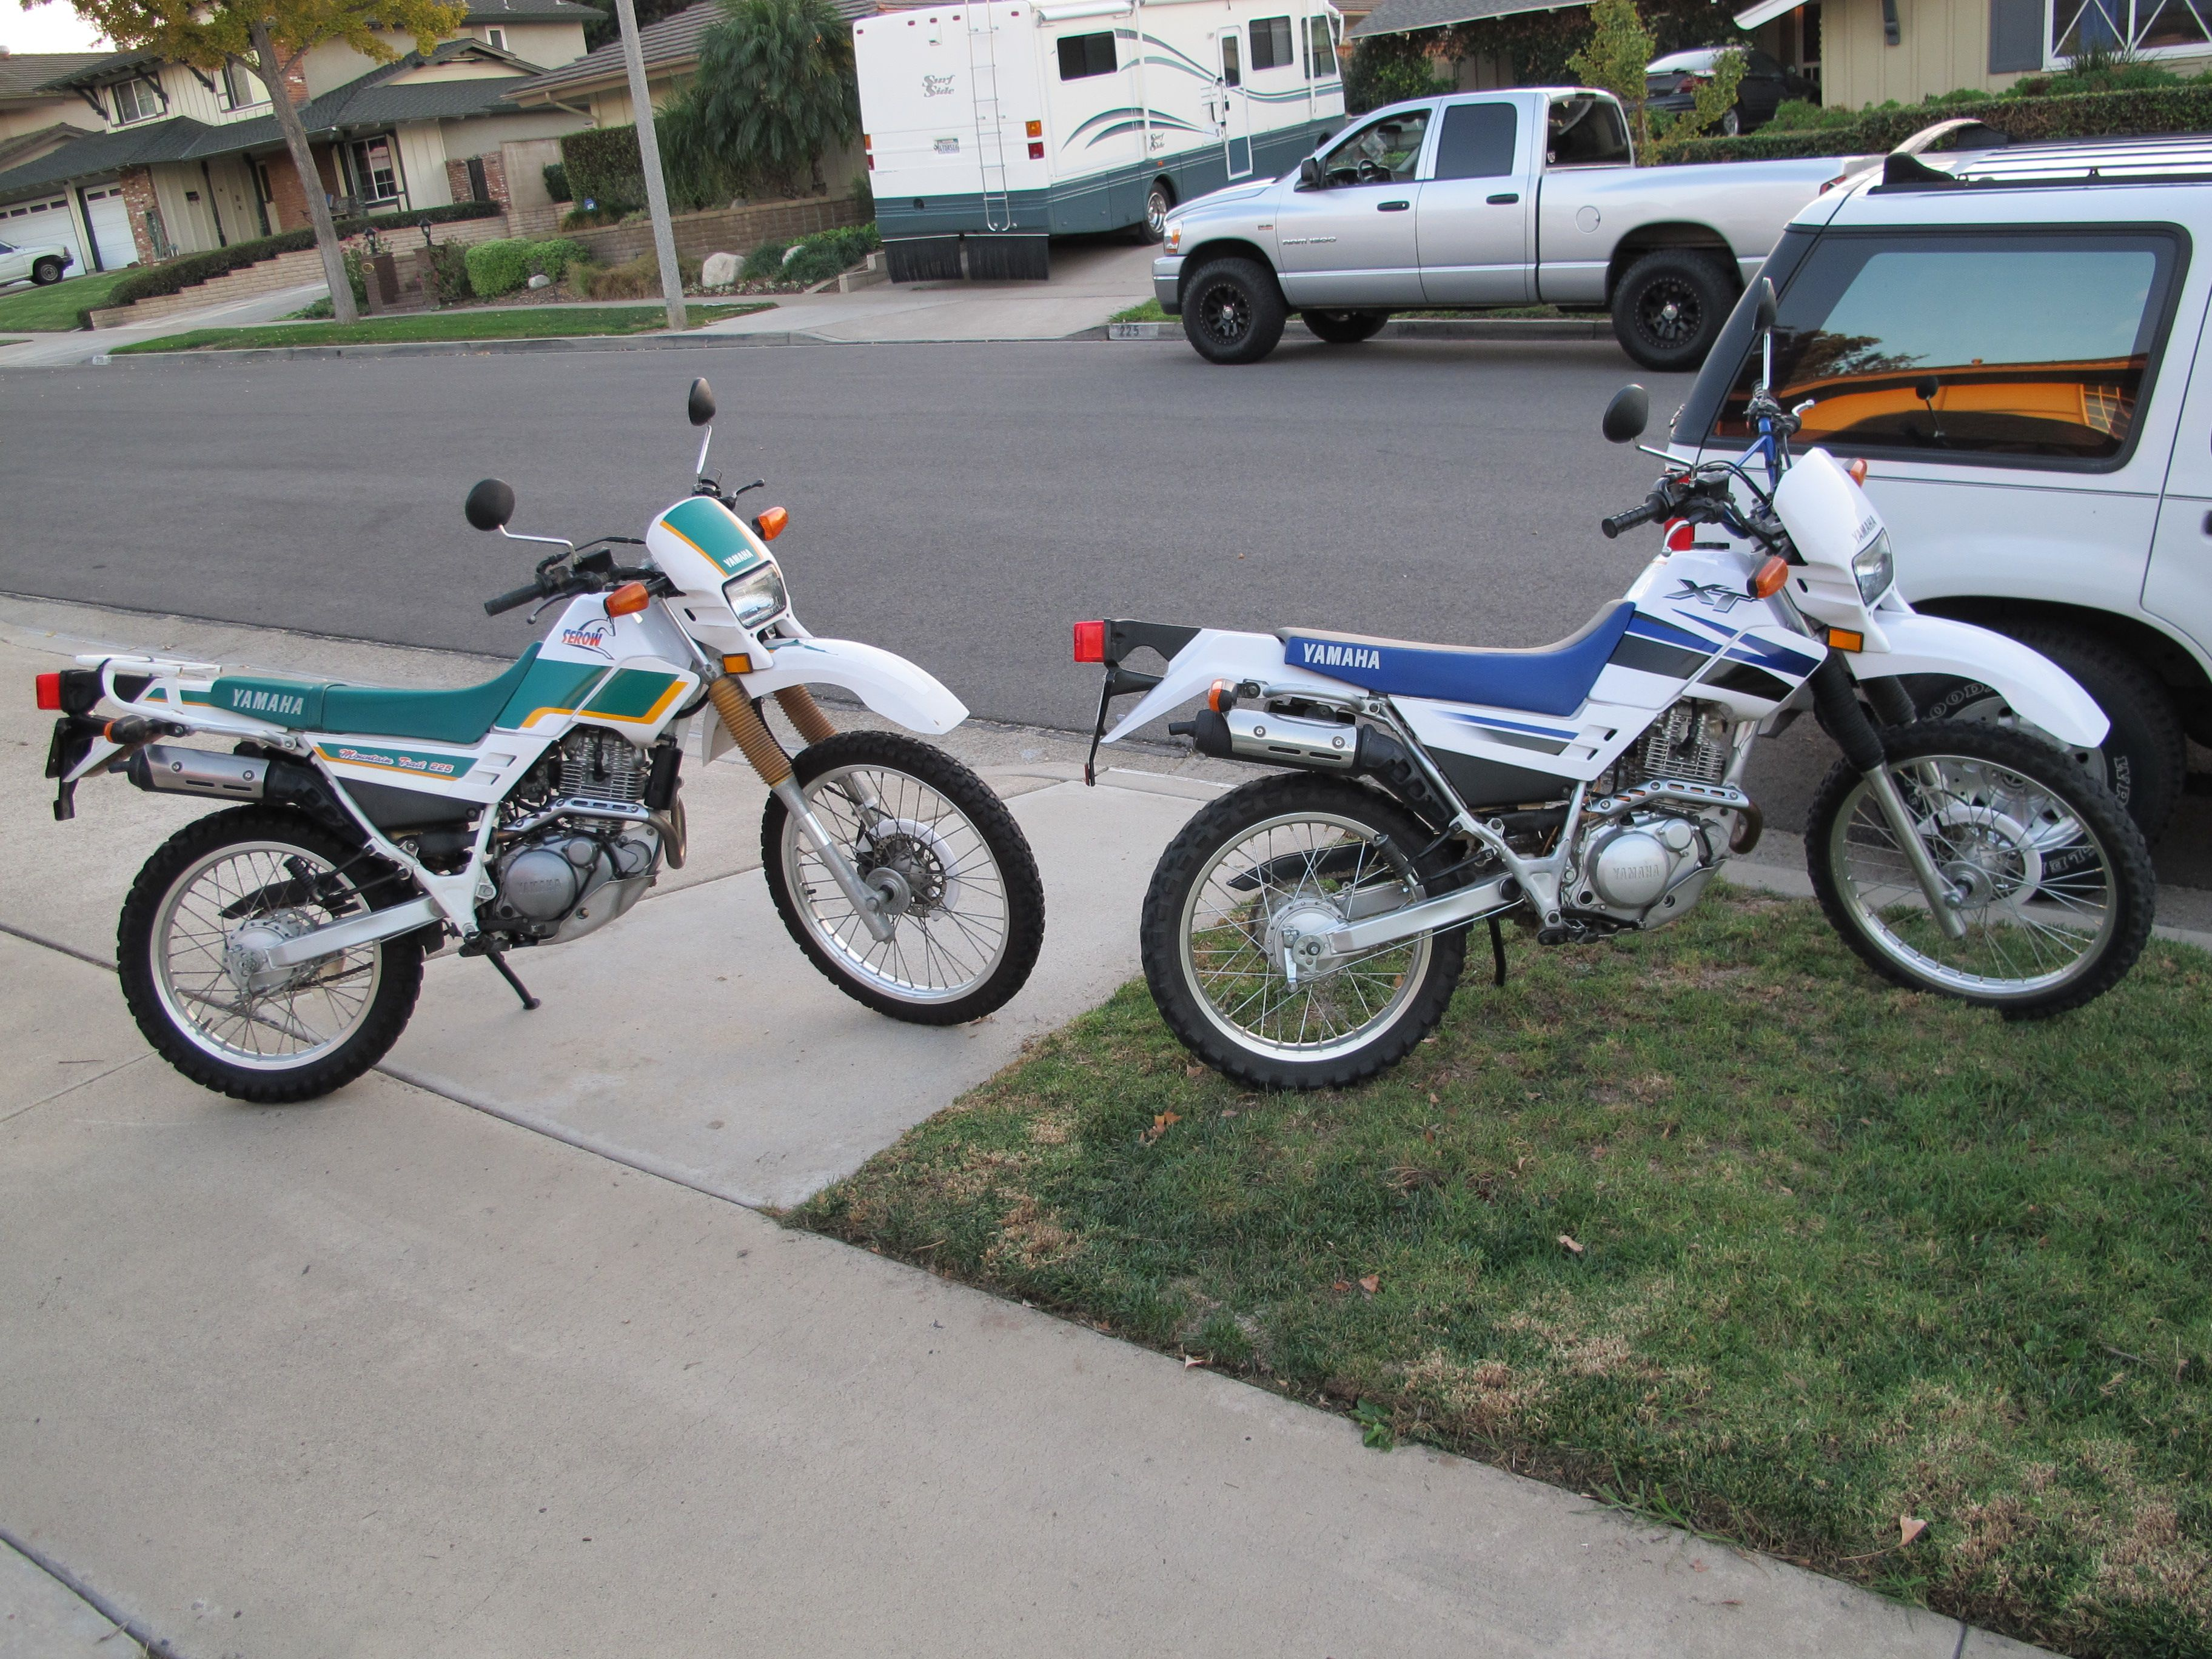 1994 yamaha xt225 specs: here is how to double the power of a 1994 xt225